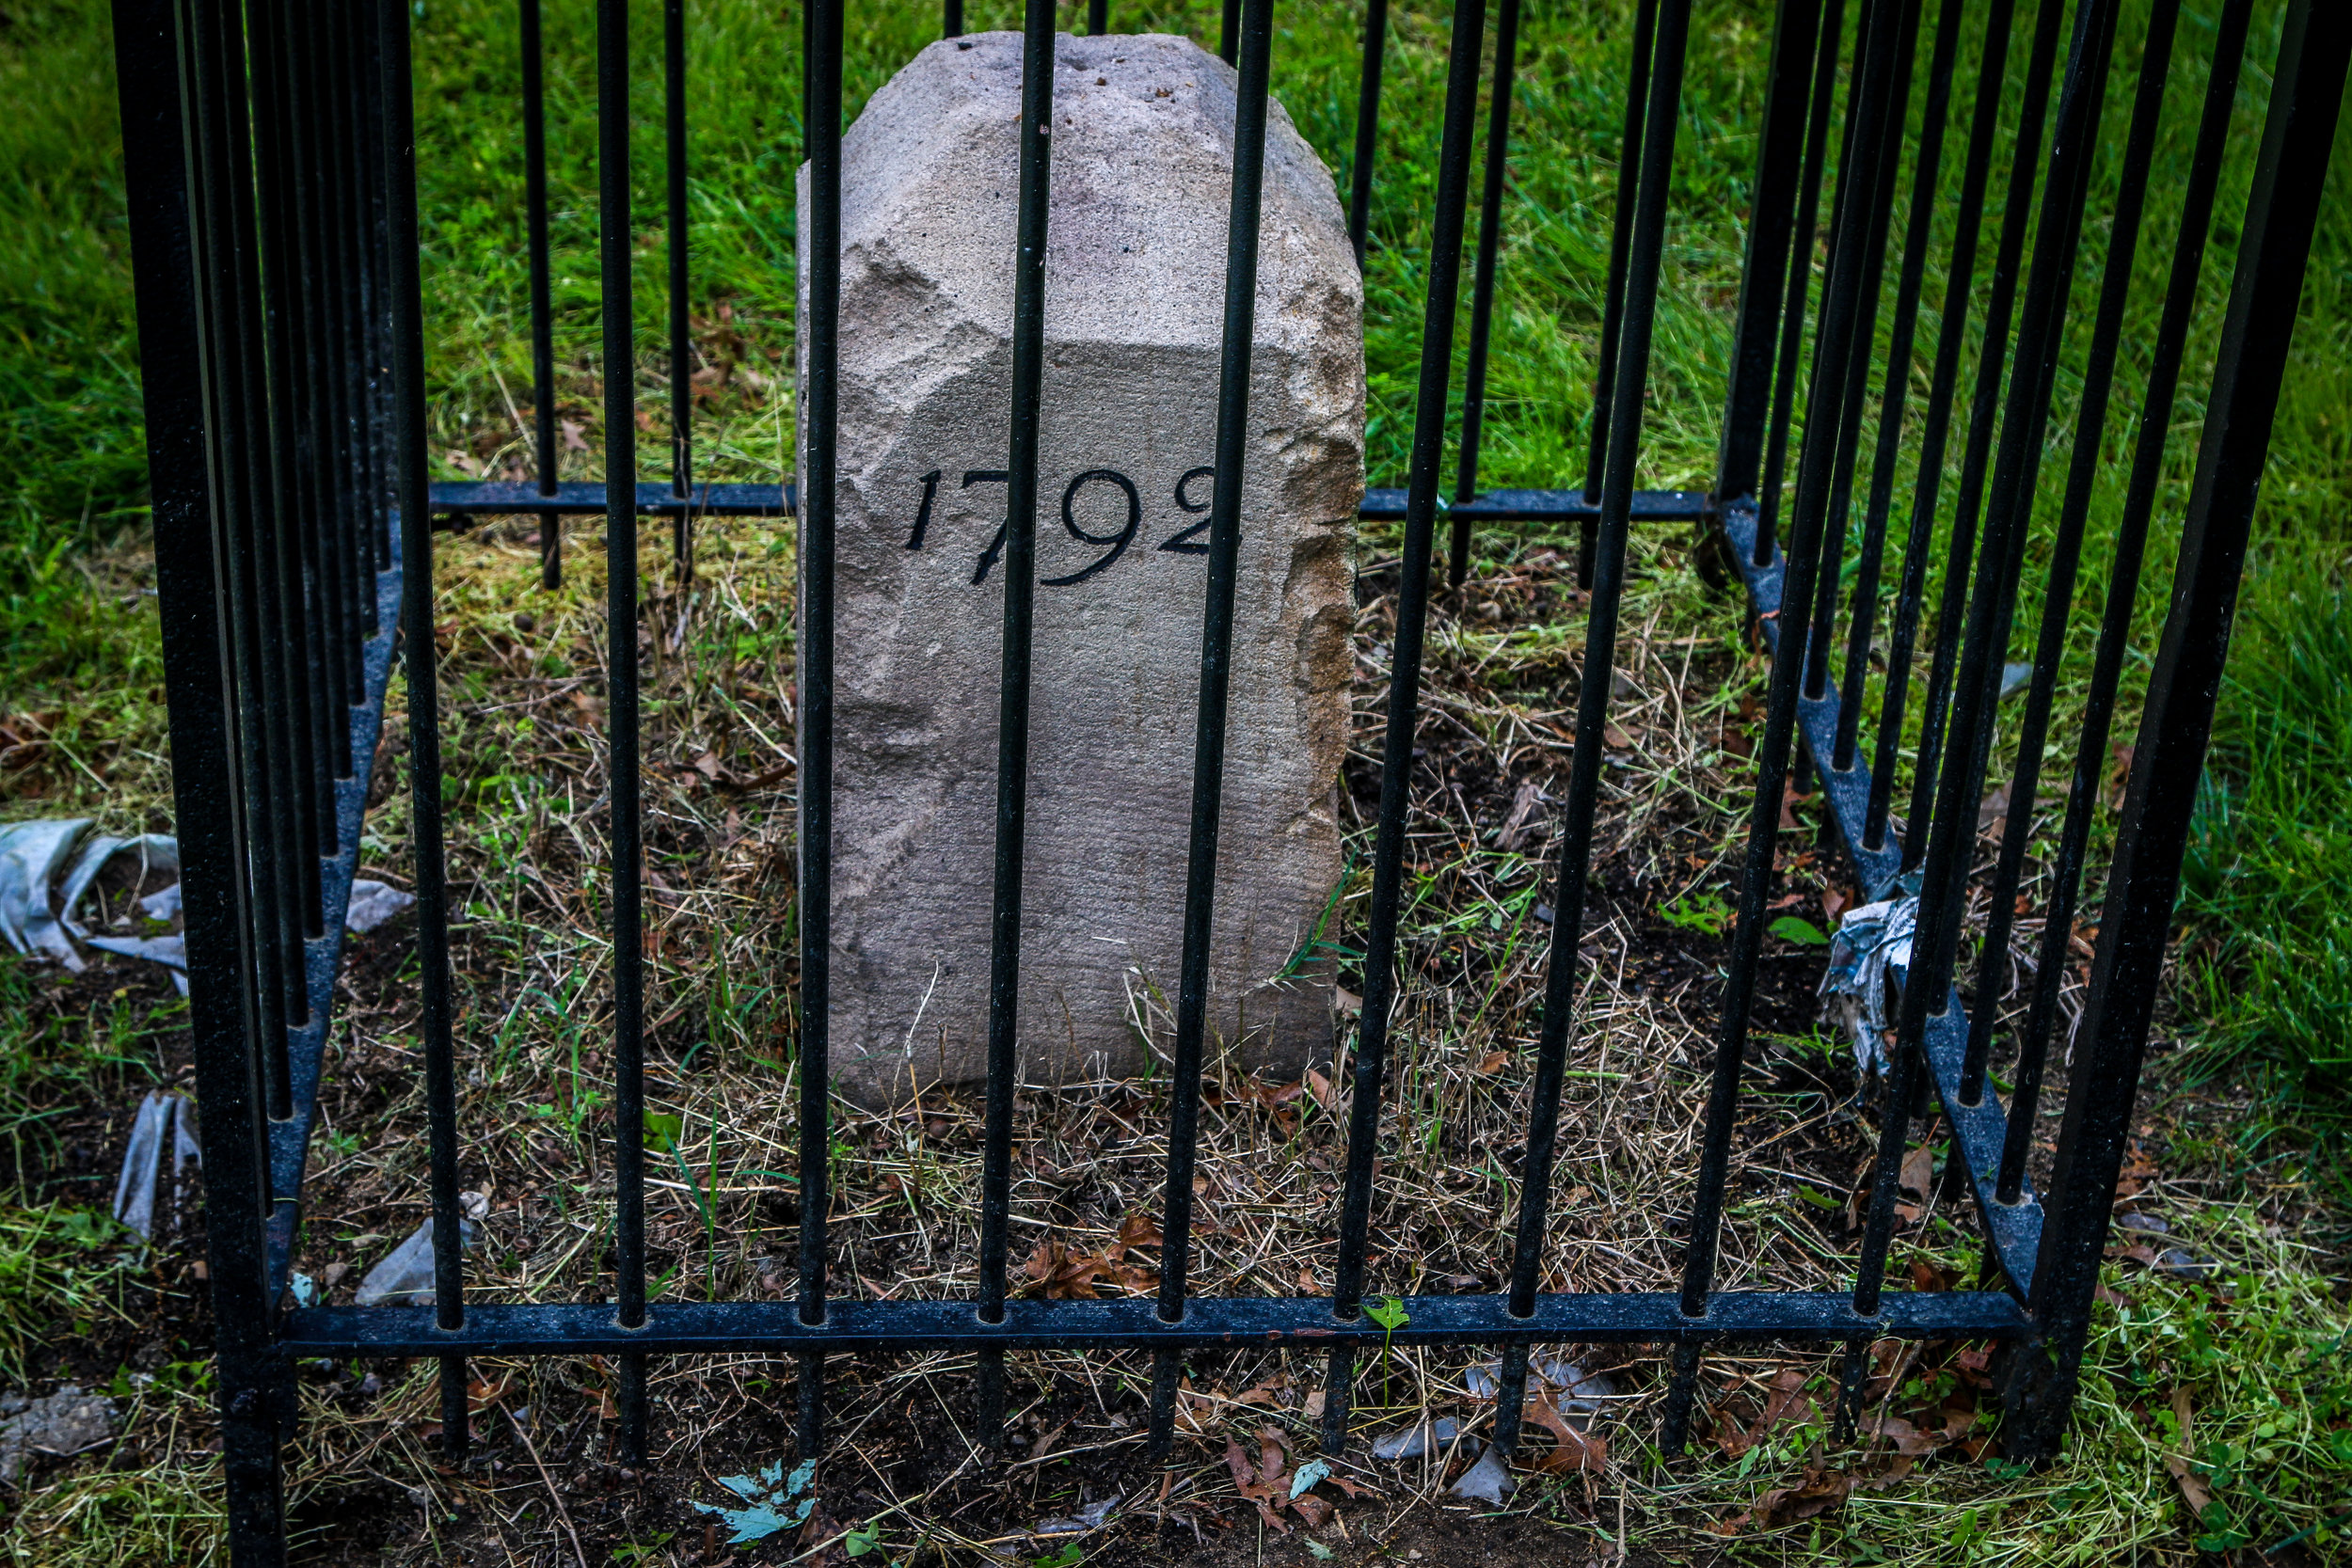 The Virginia Stones were Laid in 1791, the Maryland Stones in 1792